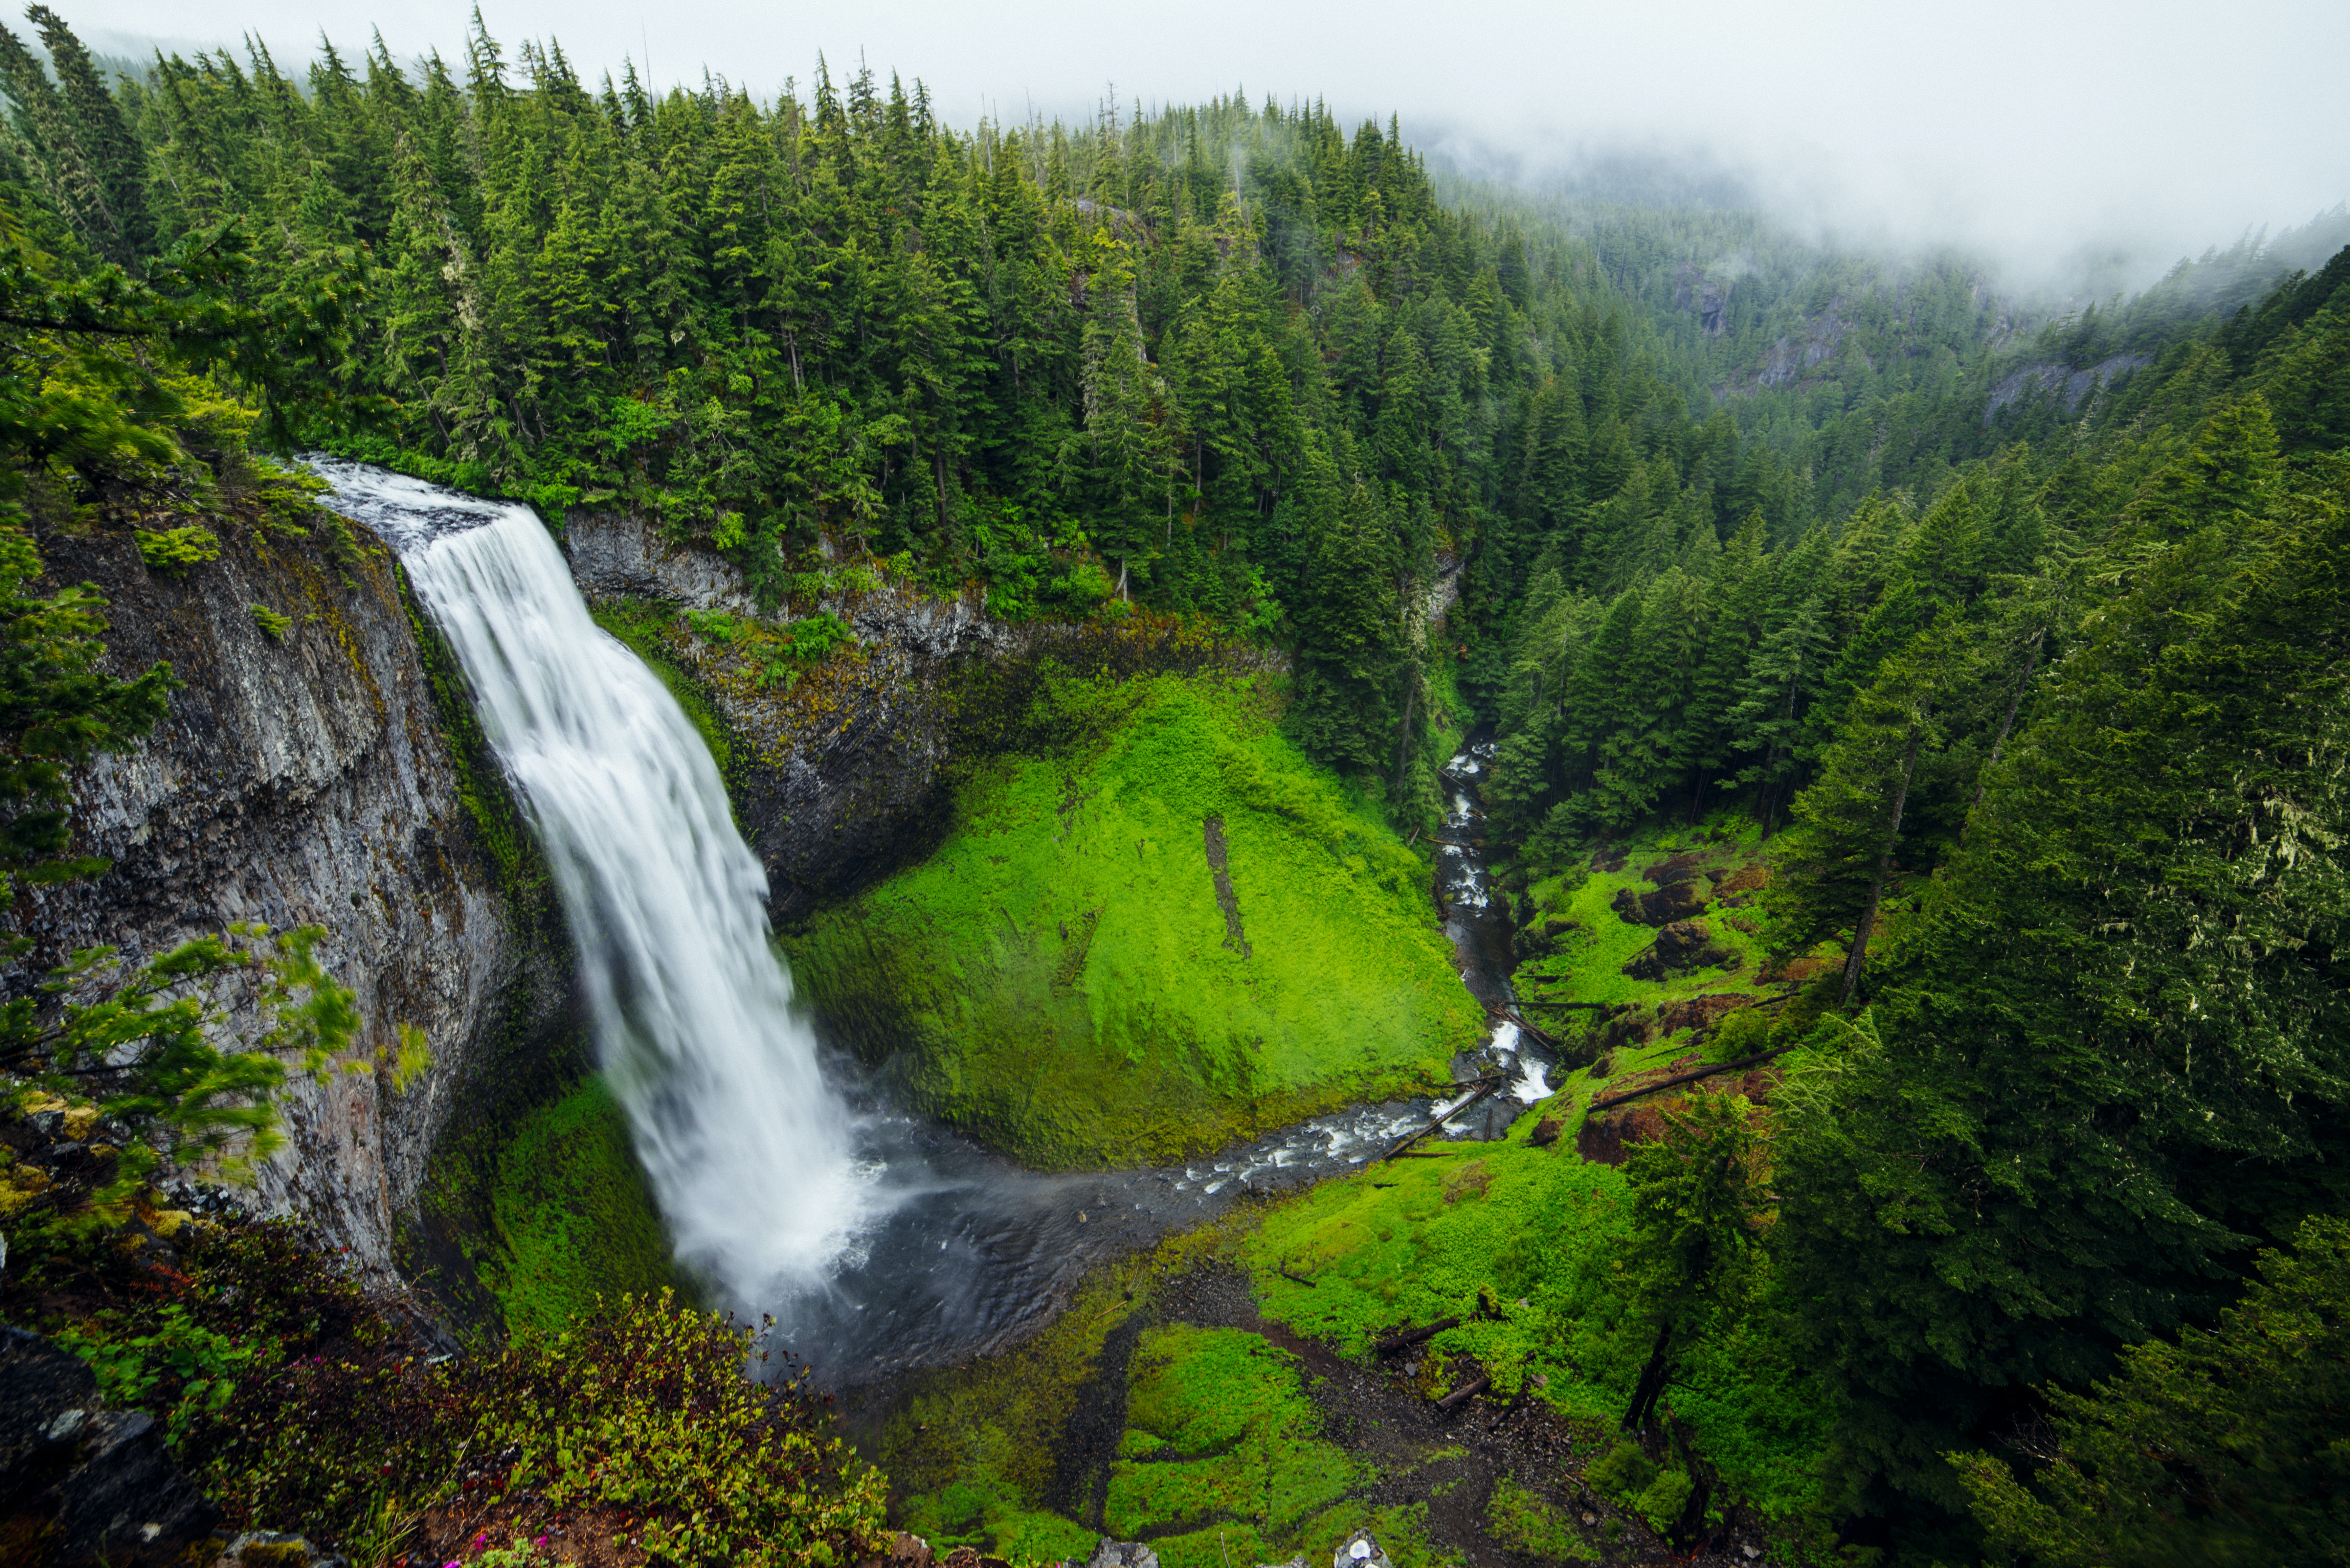 A high-angle shot of a frothy waterfall pouring down into a forest stream